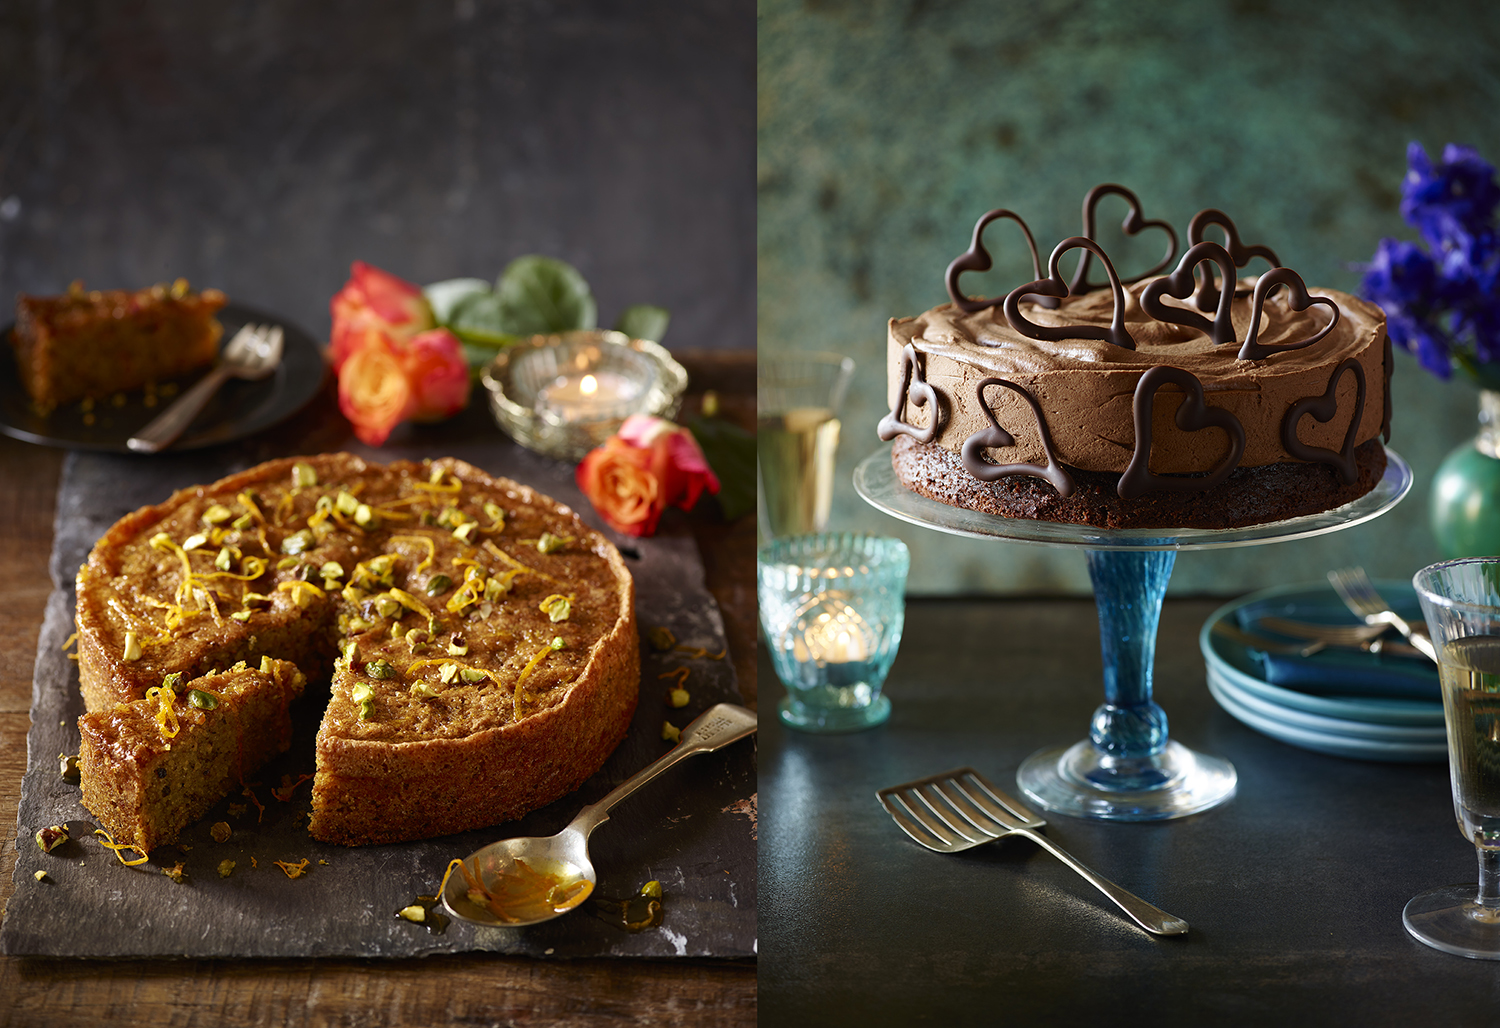 Sainsbury's Baking Book - Orange Blossom Polenta Cake Photo by Food Photographer Lauren Mclean